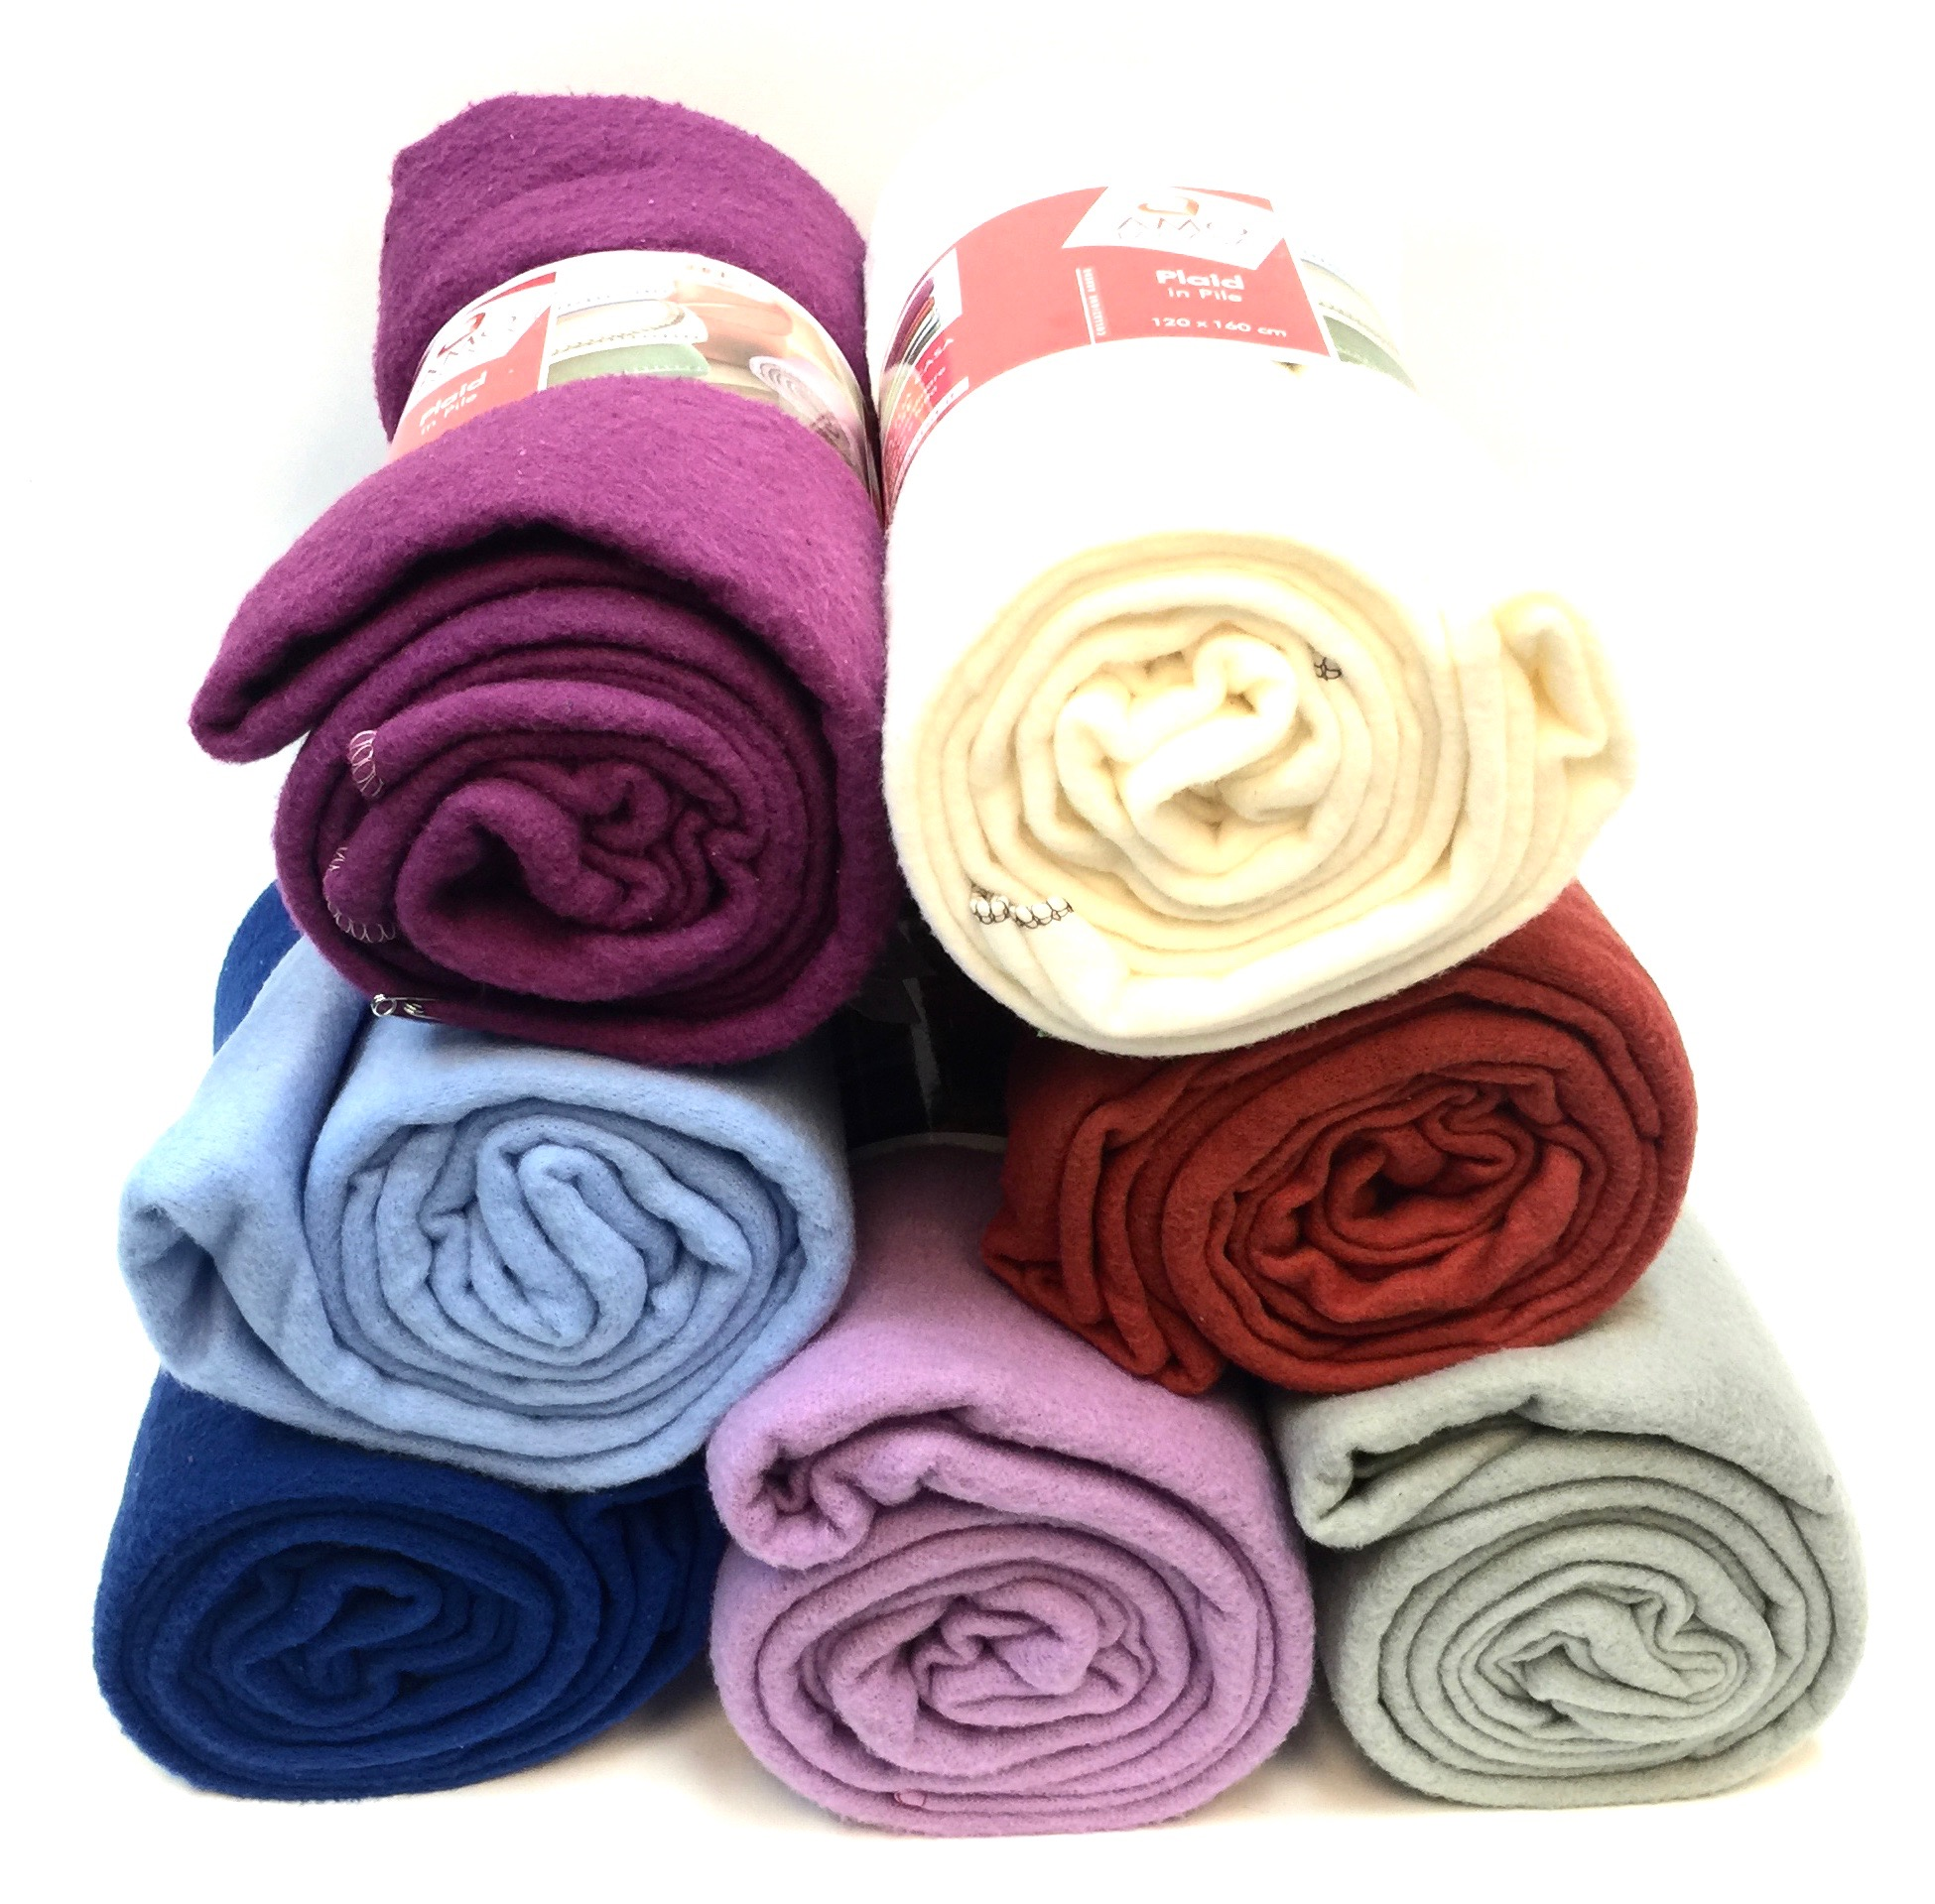 Blanket 120cm X 160cm - Solids Colors